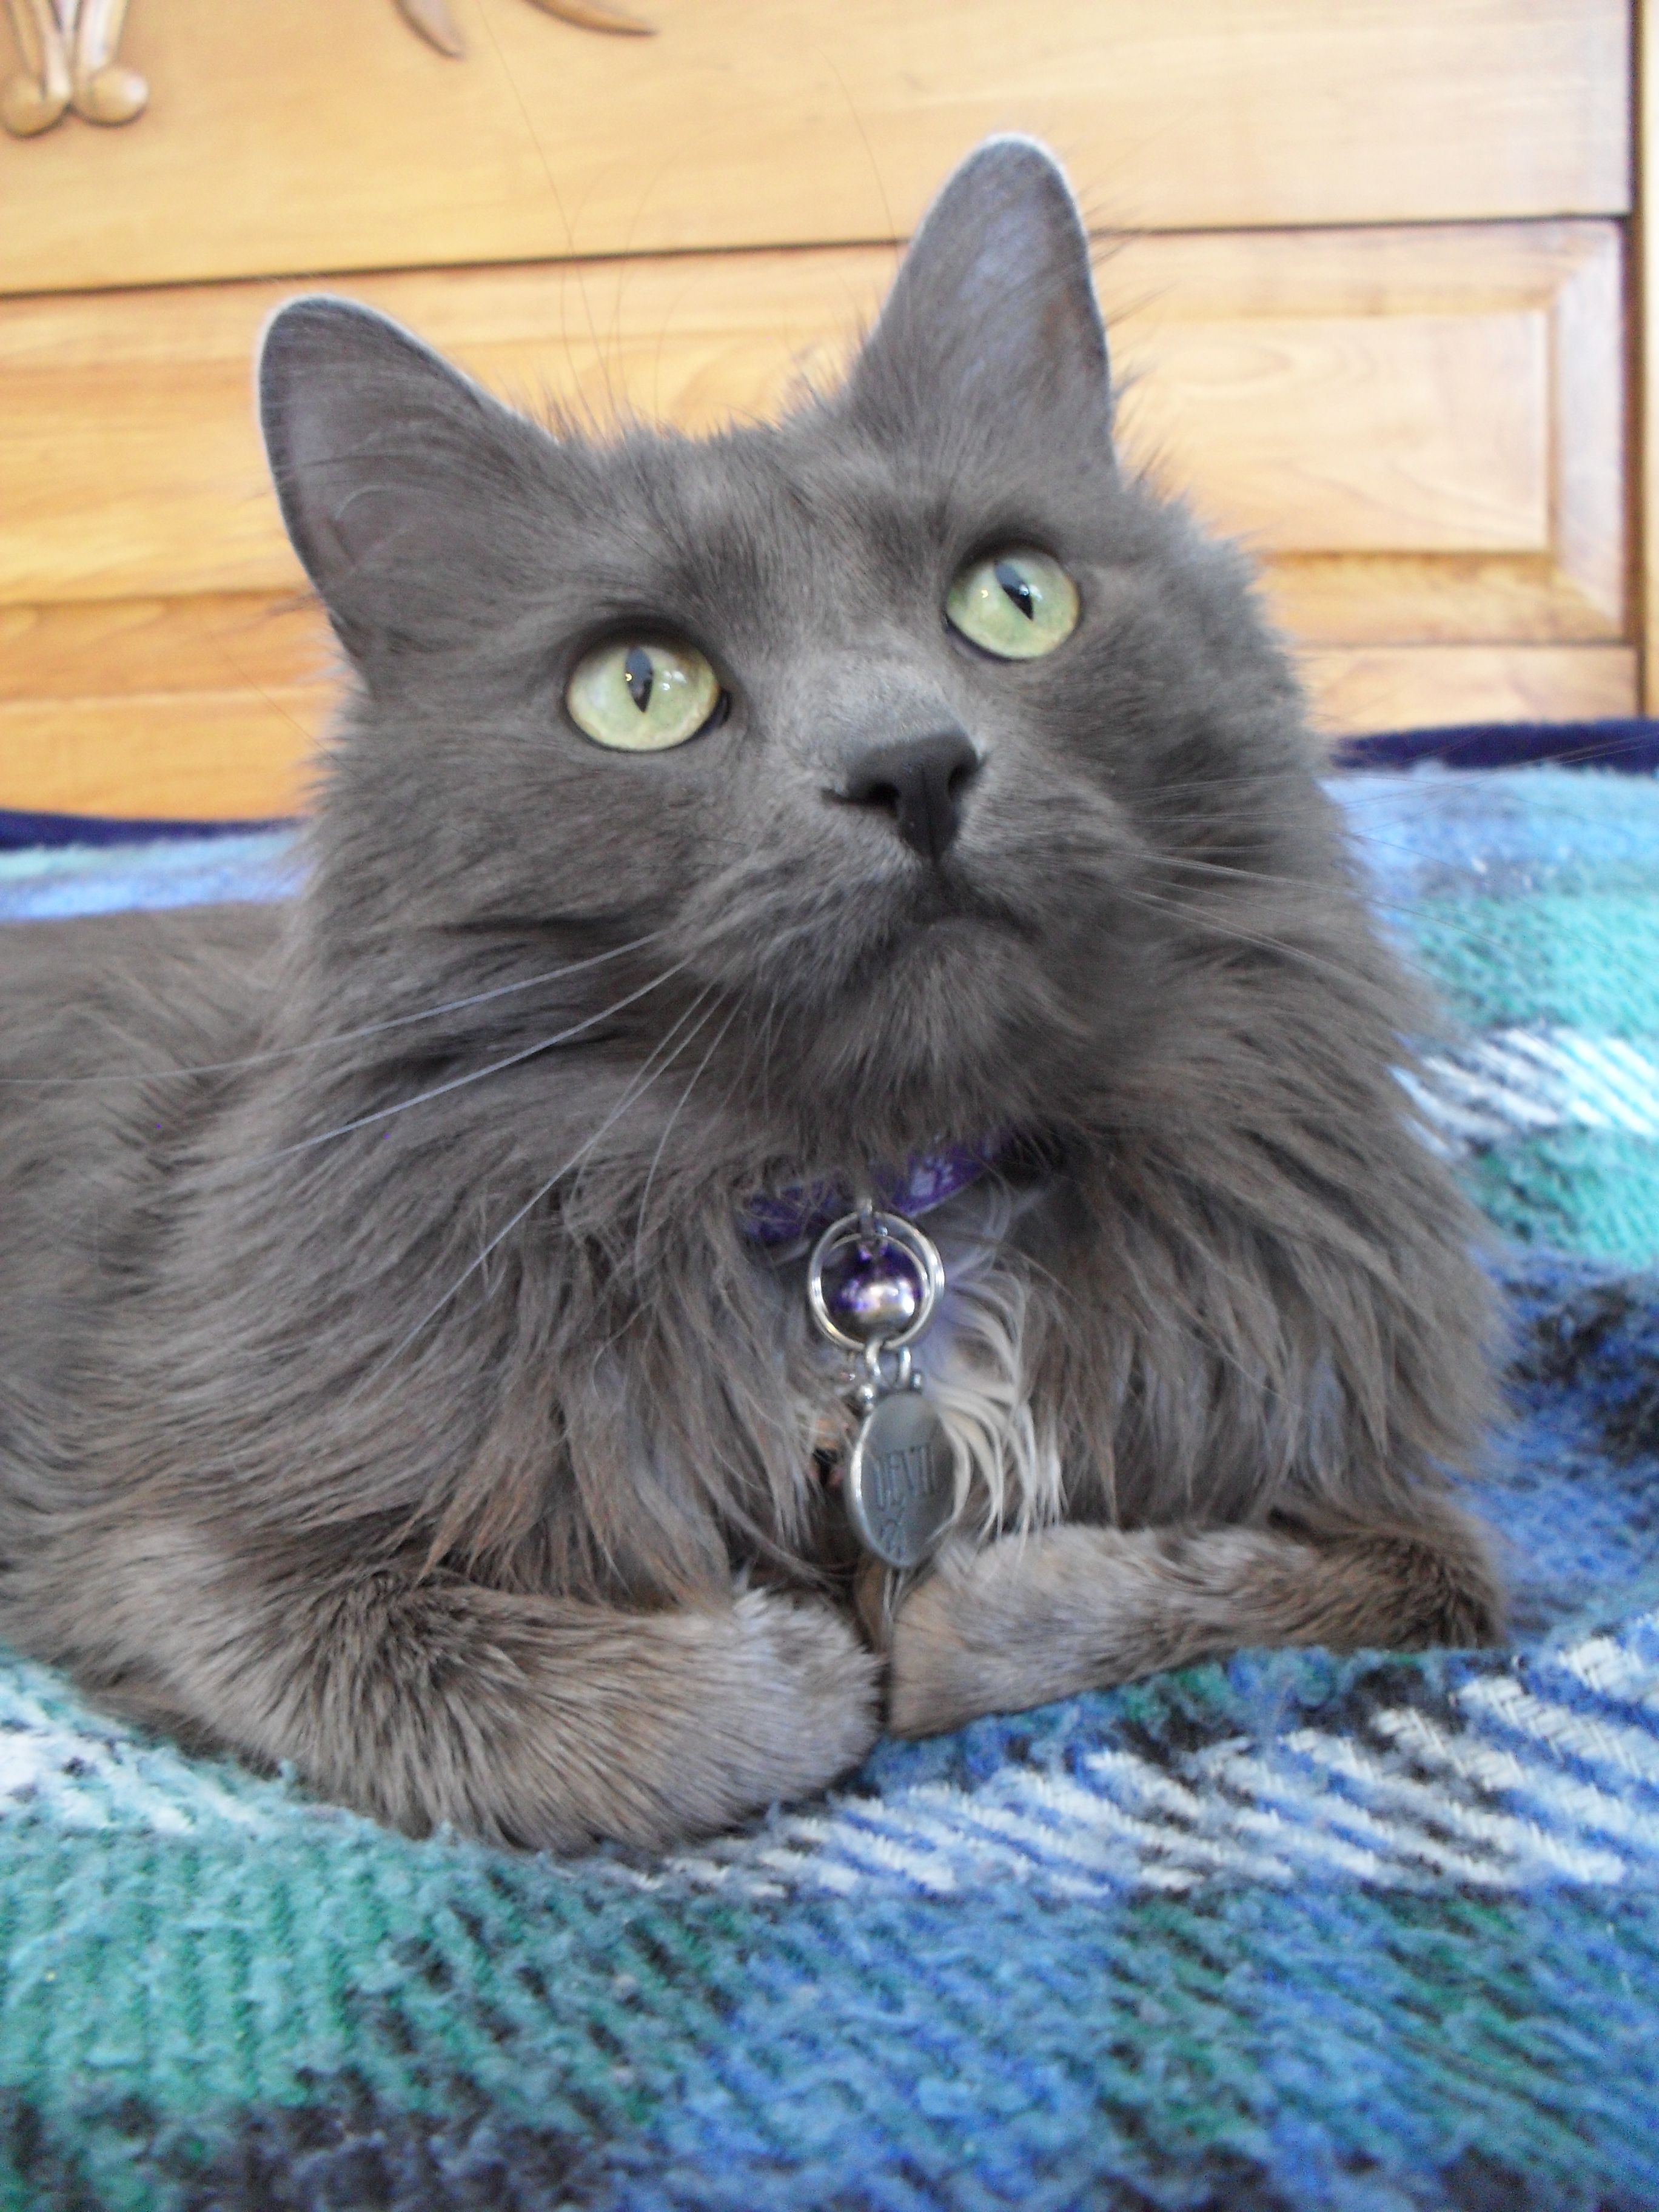 Russian Blue Maine Coon Cat - Animal Friends